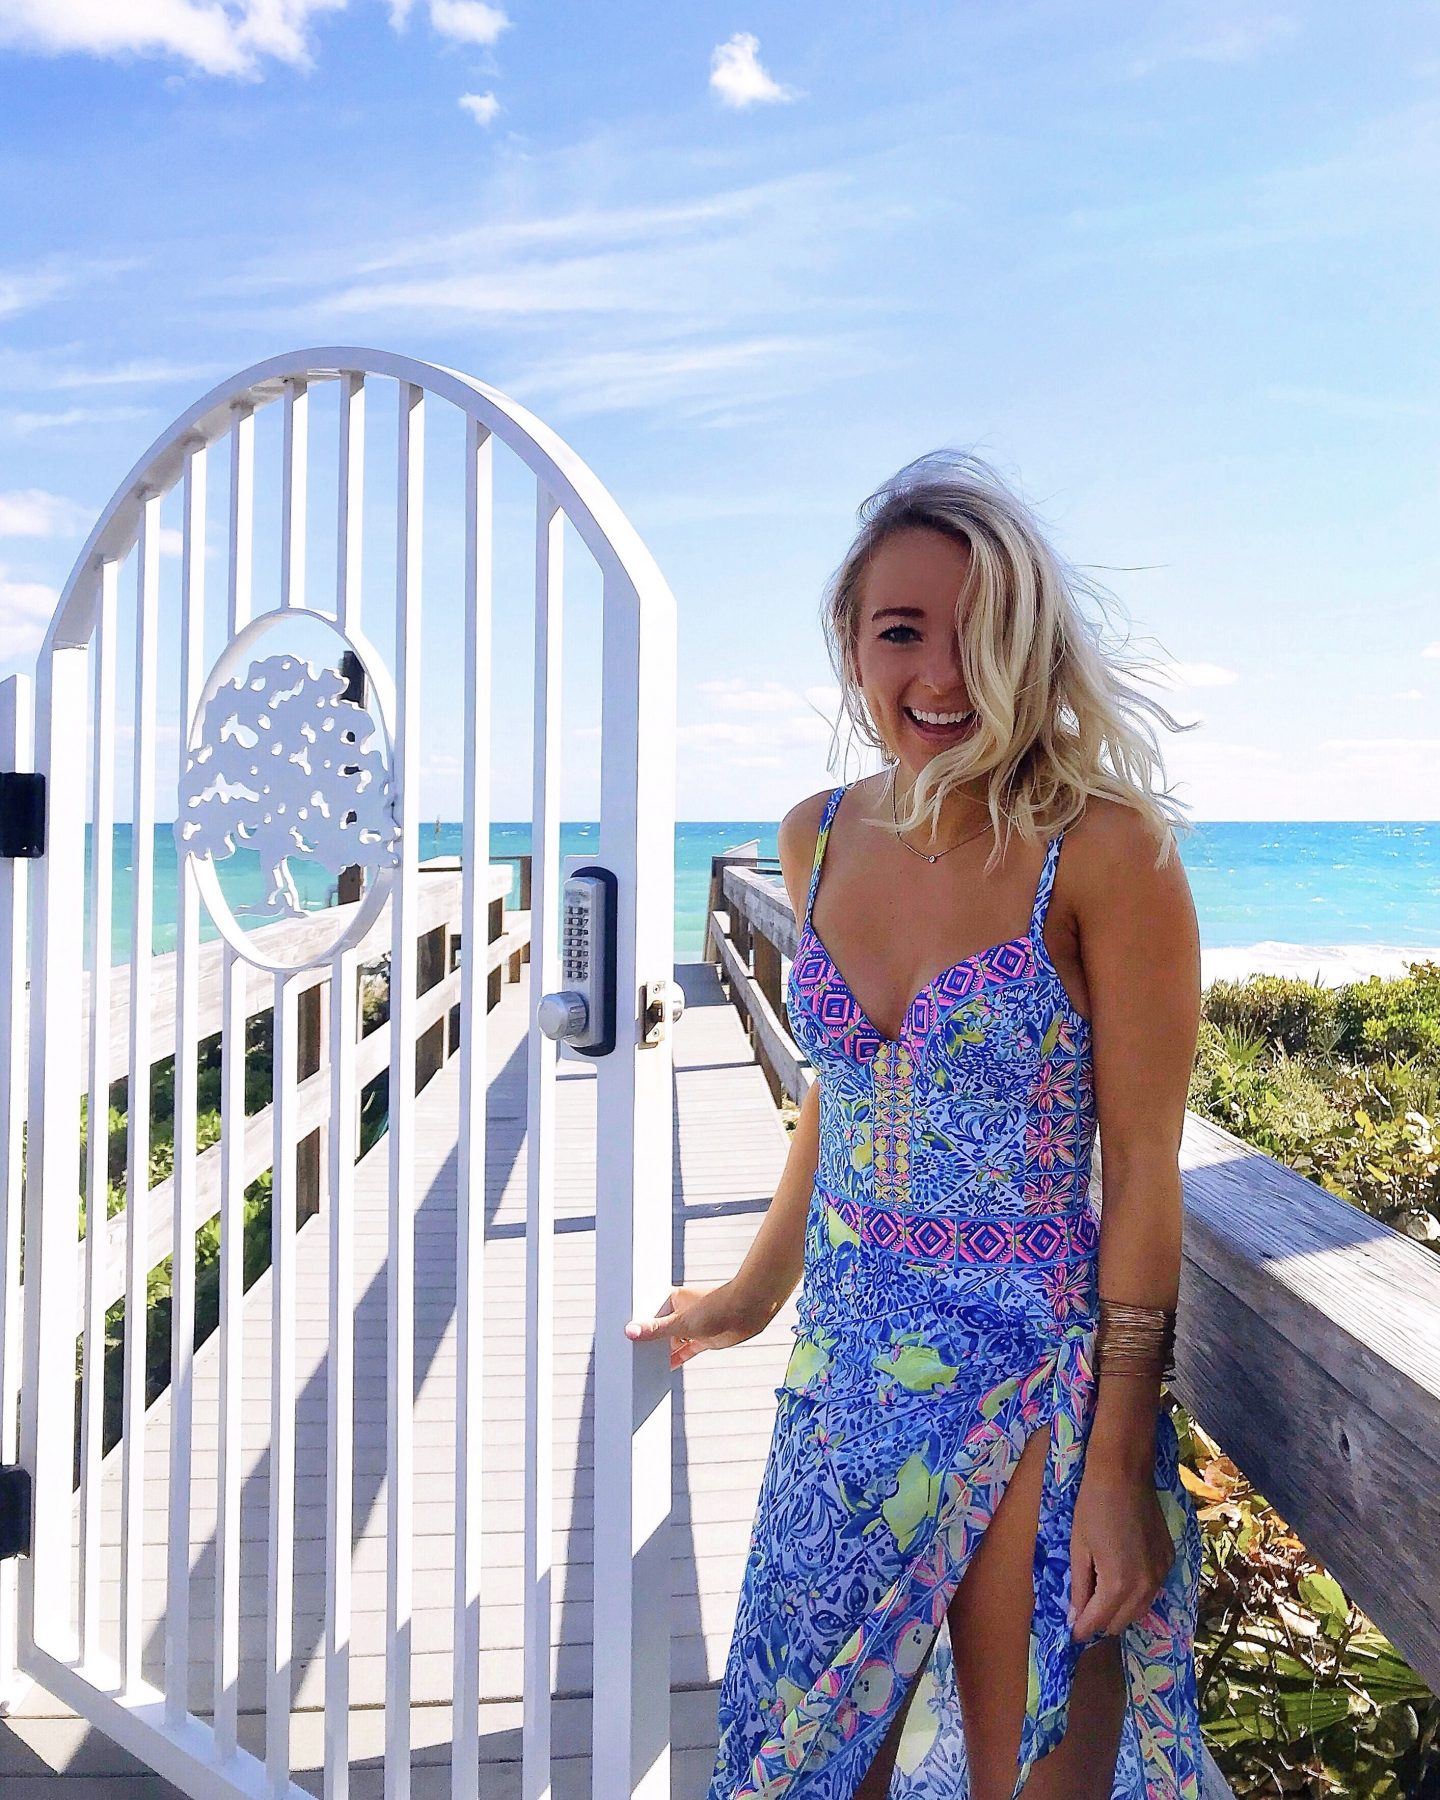 where to stay, where to eat, and what to do in Vero Beach, Florida